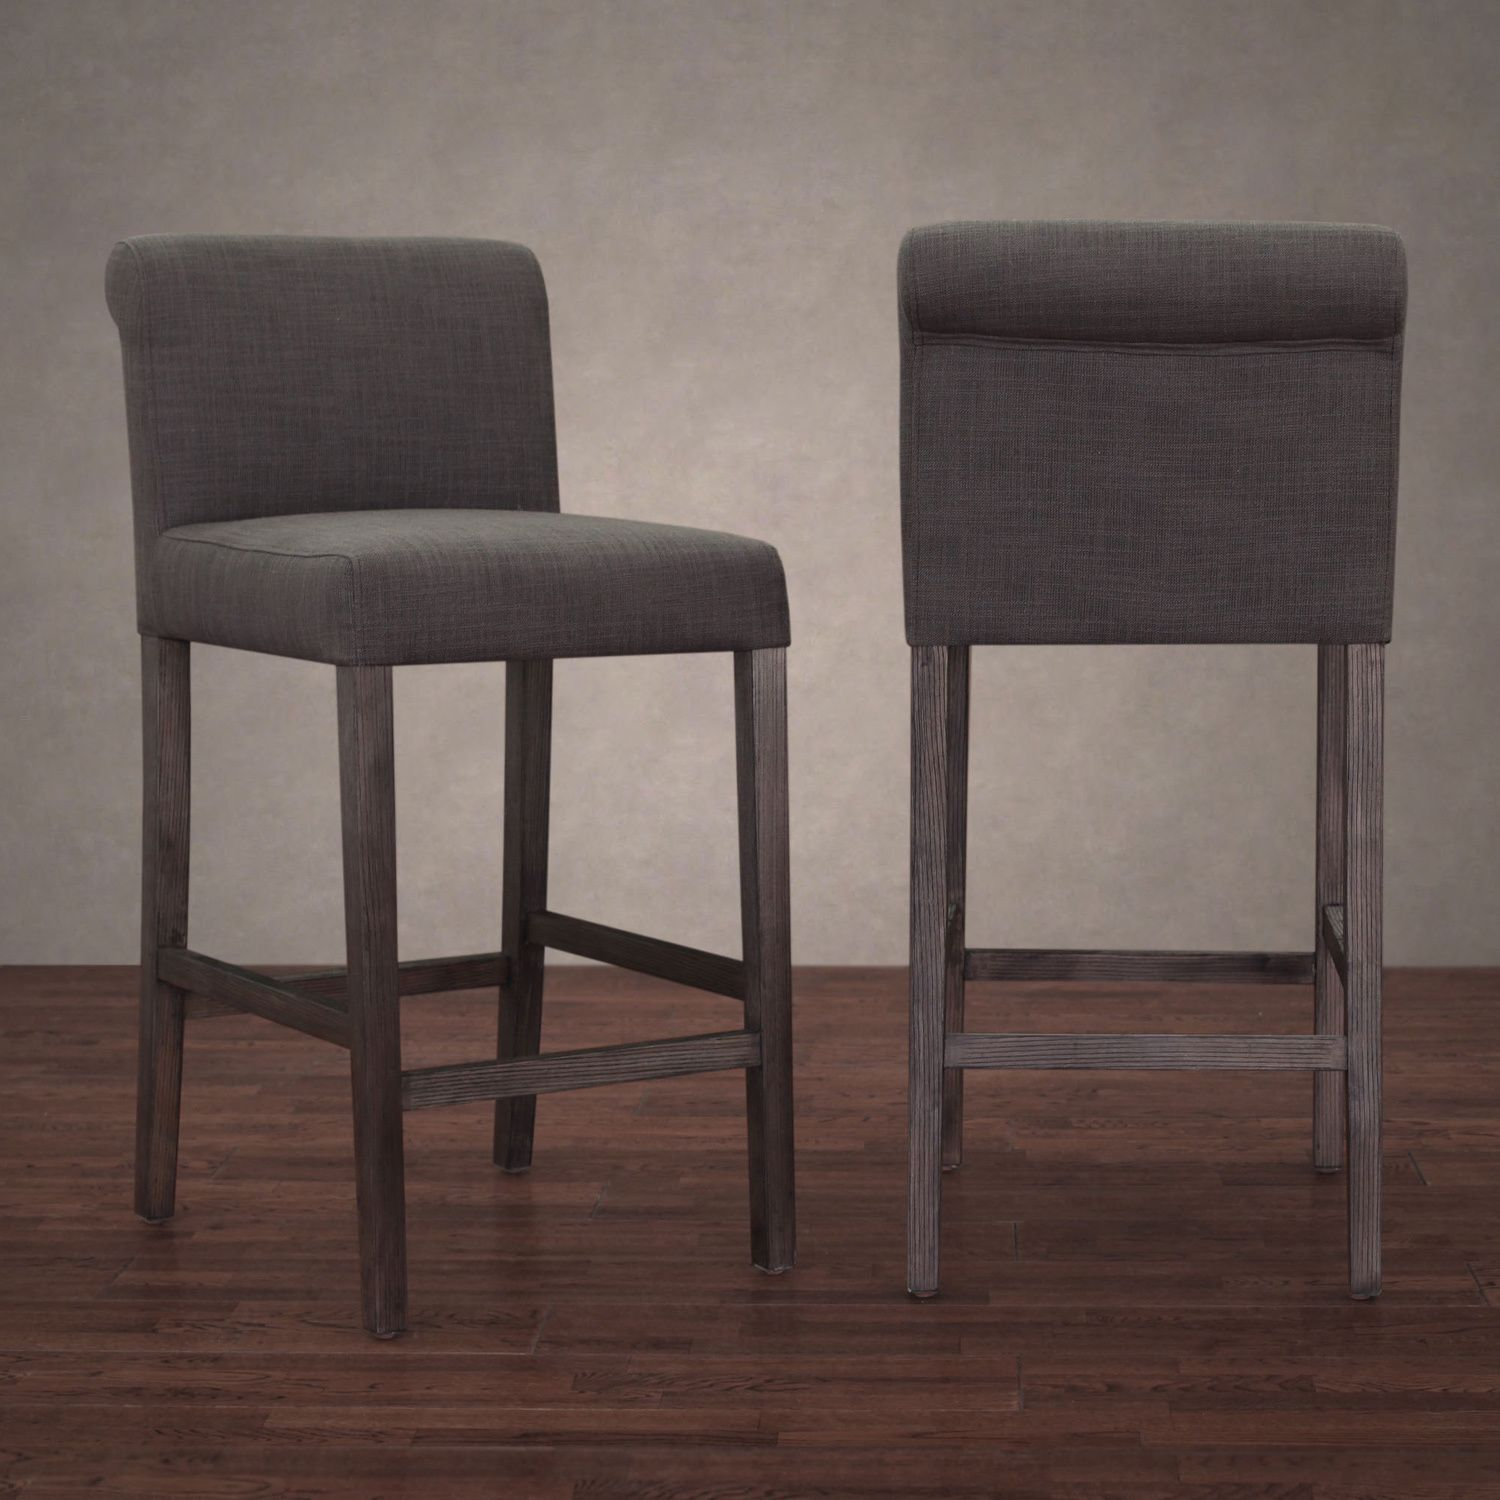 cosmopolitan smoke linen counter stool set of 2 by i love living